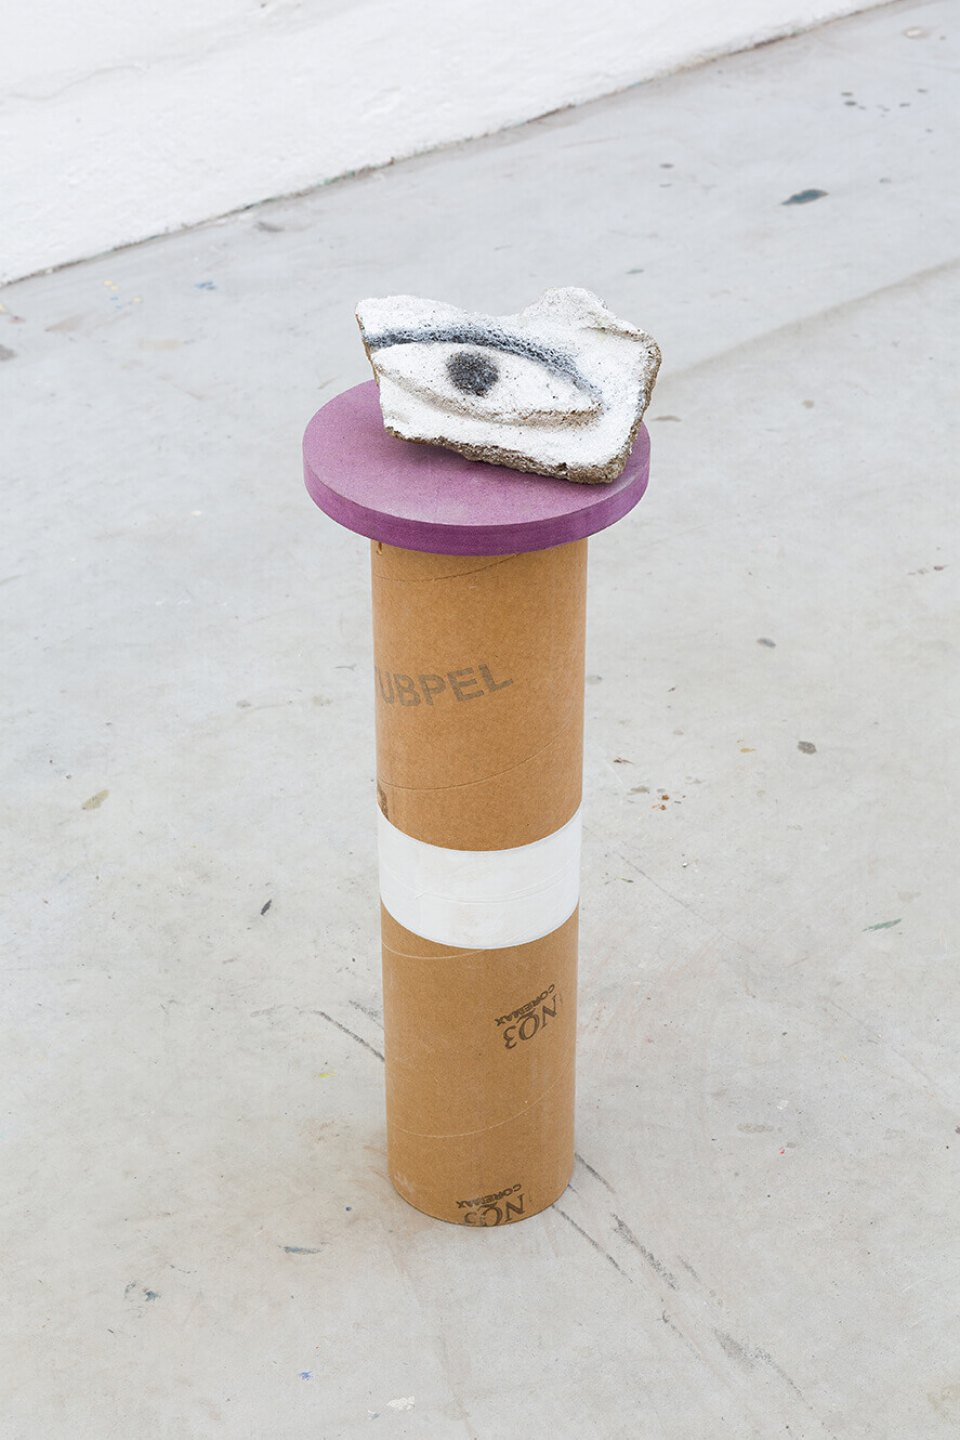 Neïl Beloufa,&nbsp;<em>Security camera, good, all seeing, bad, eye</em>, 2014, mixed media, 58 × 20 cm ø - Mendes Wood DM